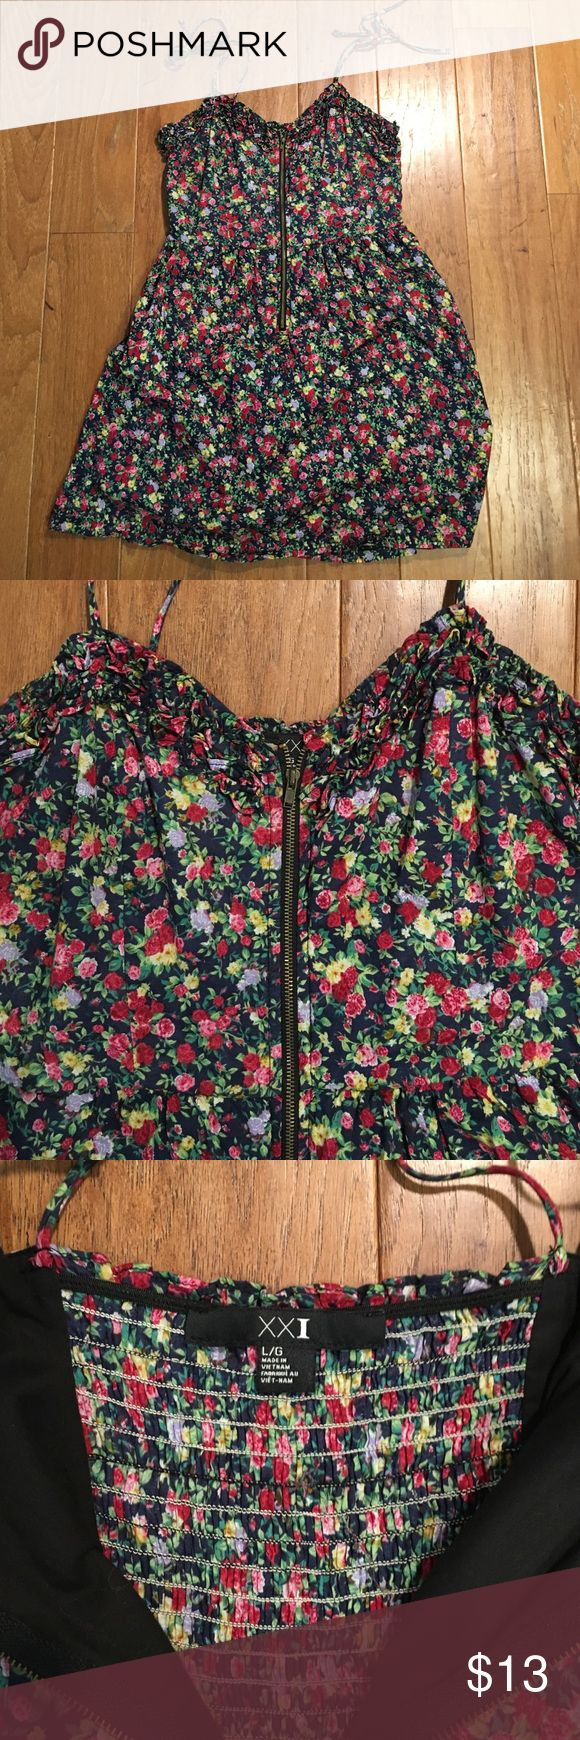 Forever 21 floral zip up dress Only worn once, super cute forever 21 dress large. Navy and pink floral. Zip up front. Tie shoulders Forever 21 Dresses